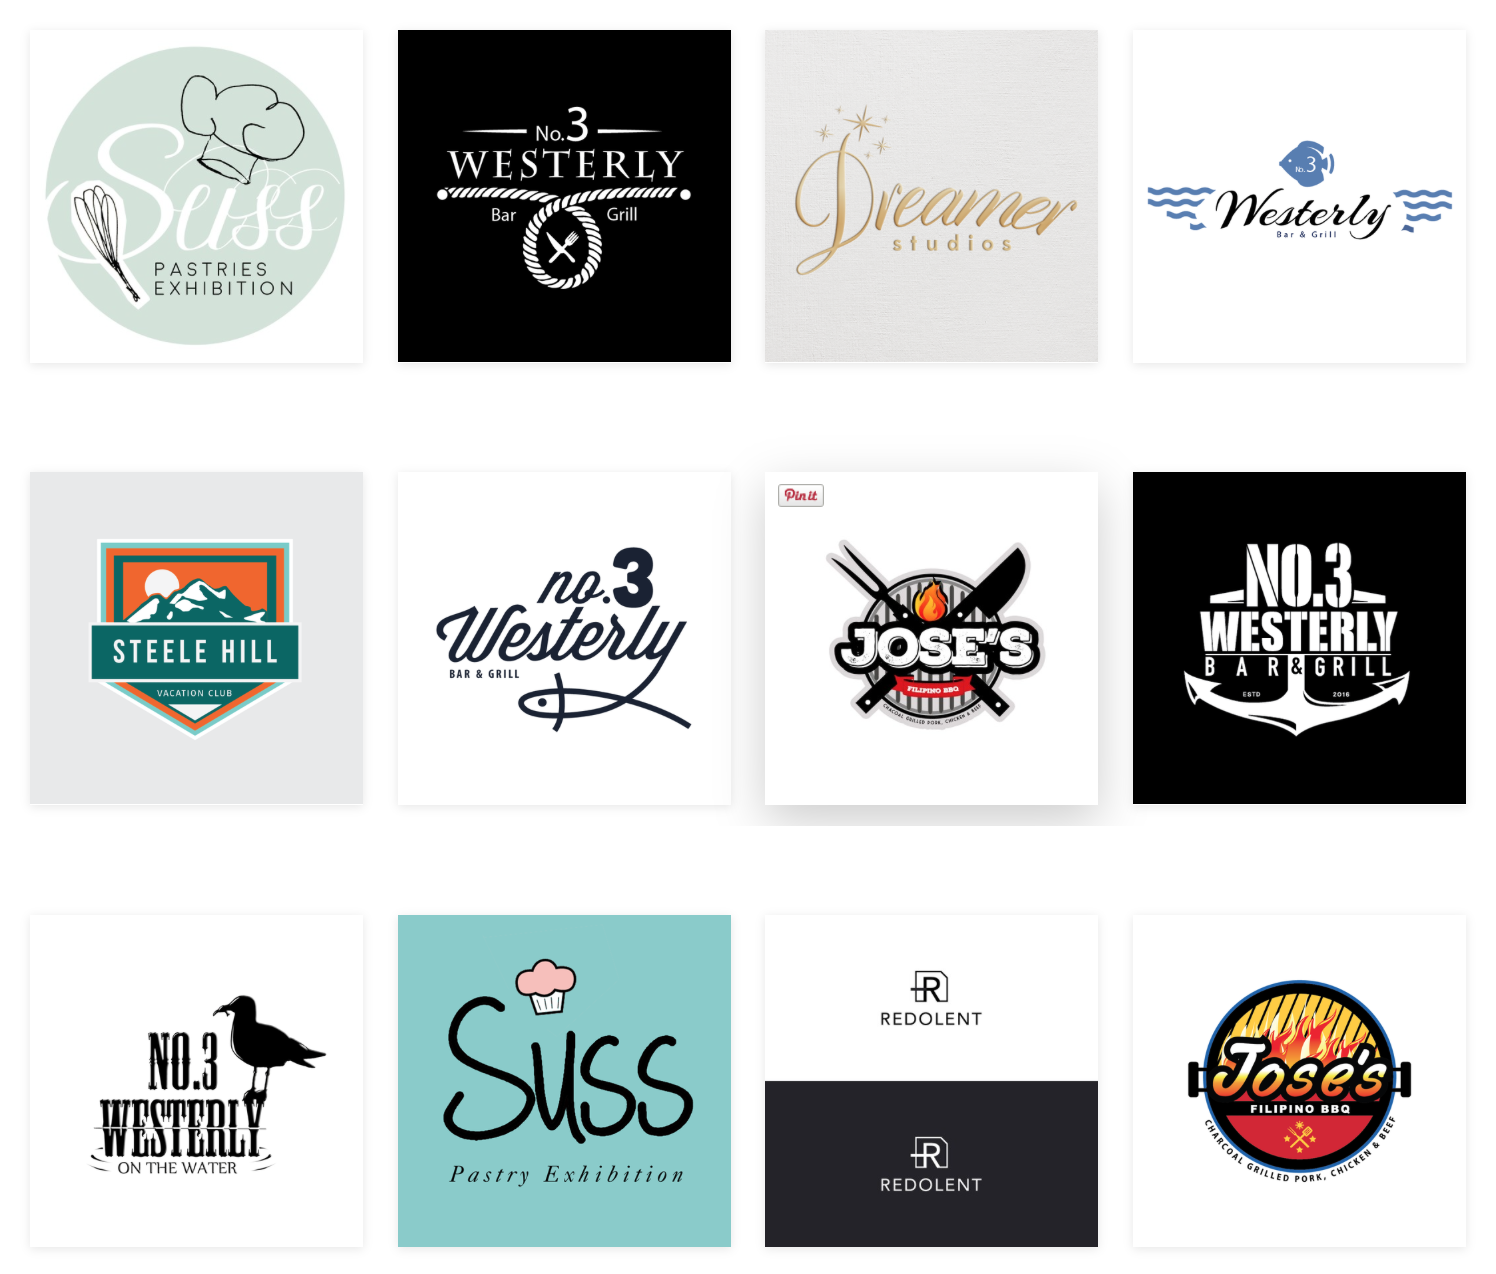 DESIGN A LOGO THAT GRABS ATTENTION.